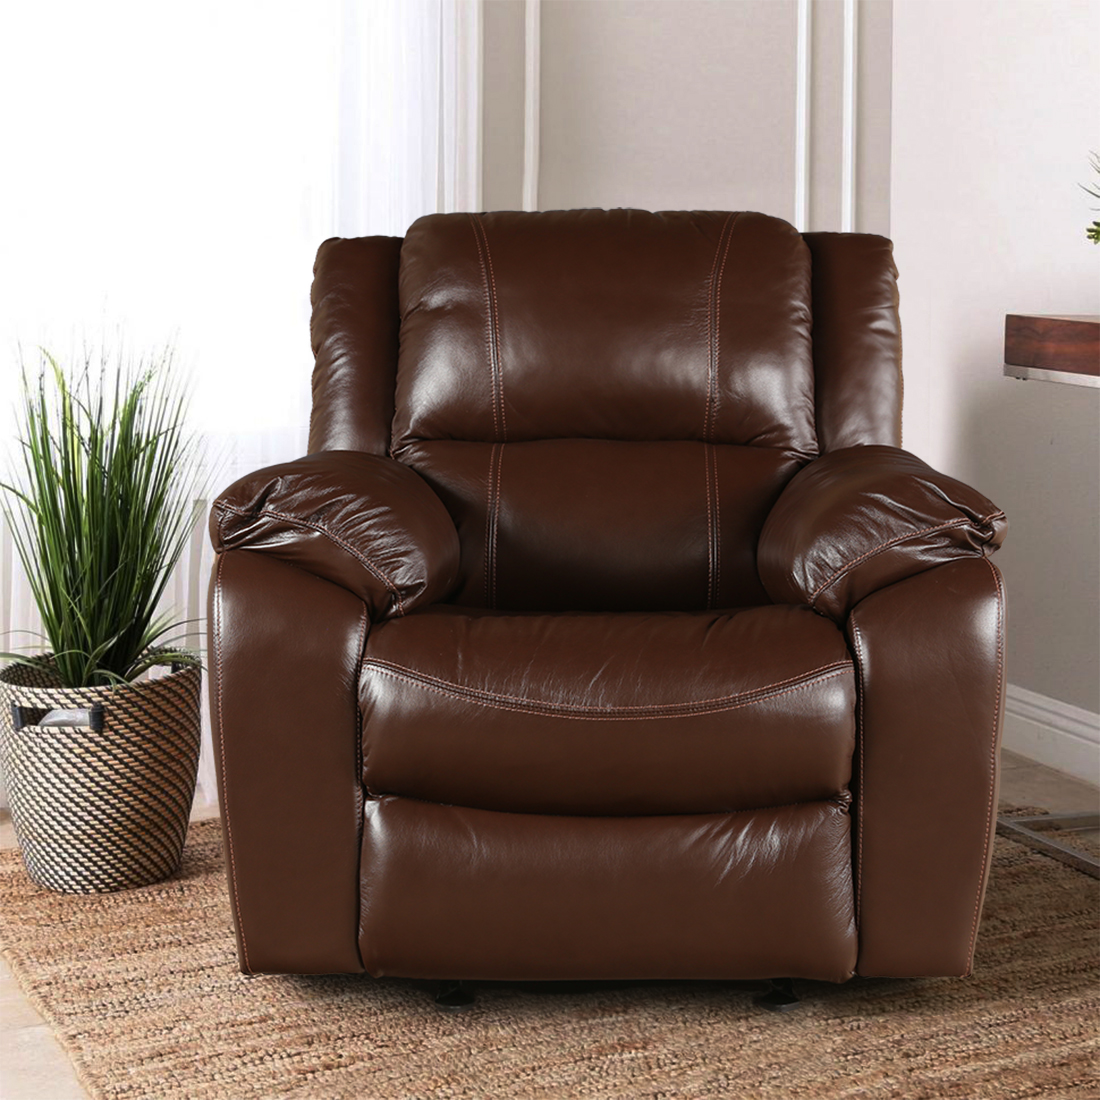 Bristol Half Leather Single Seater Recliner in Brown Colour by HomeTown